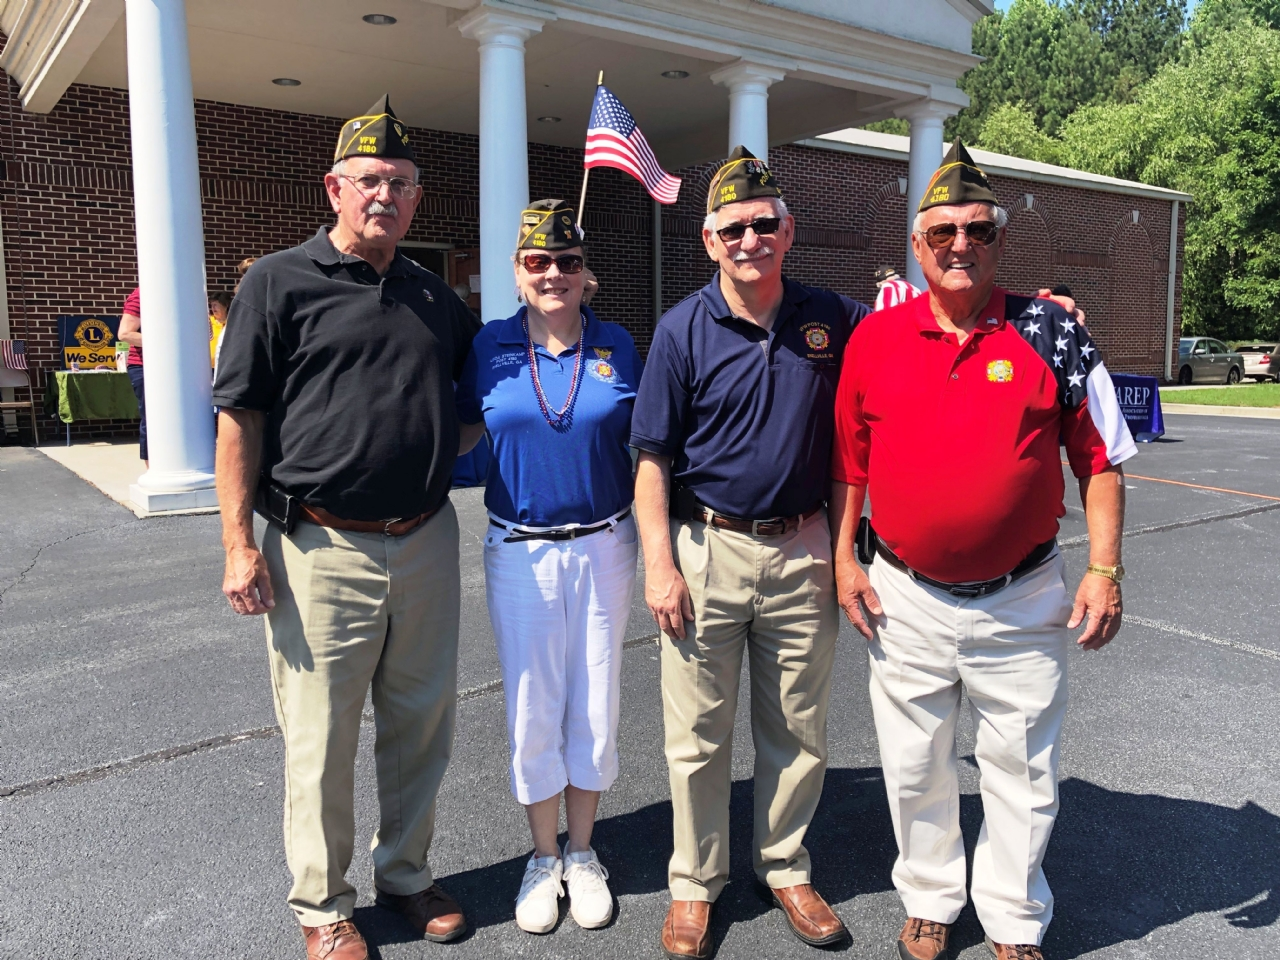 Post 4180 members take part in the Annual Snellville Flag Day Celebration June 15, 2019